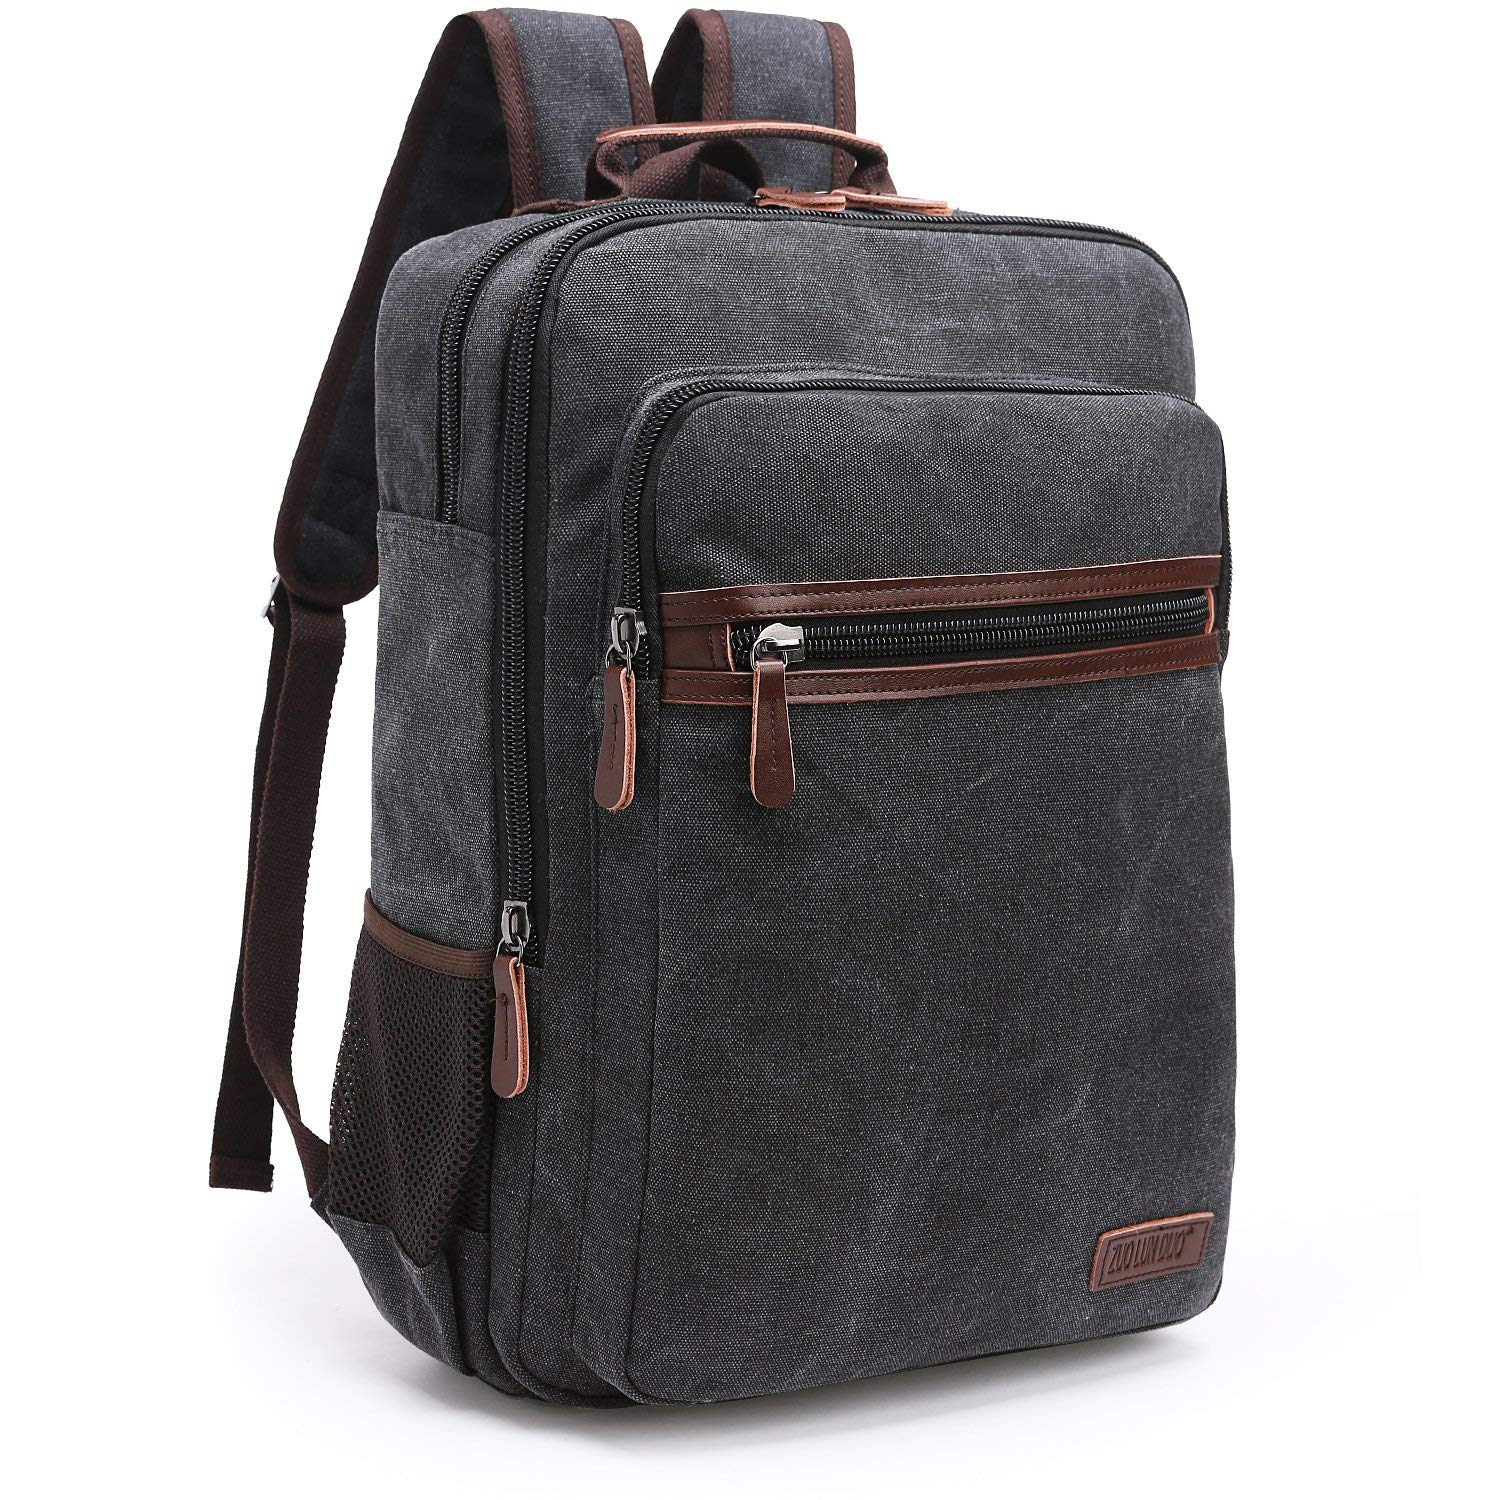 145b2af5c1 Get Quotations · Oflamn Canvas Backpack